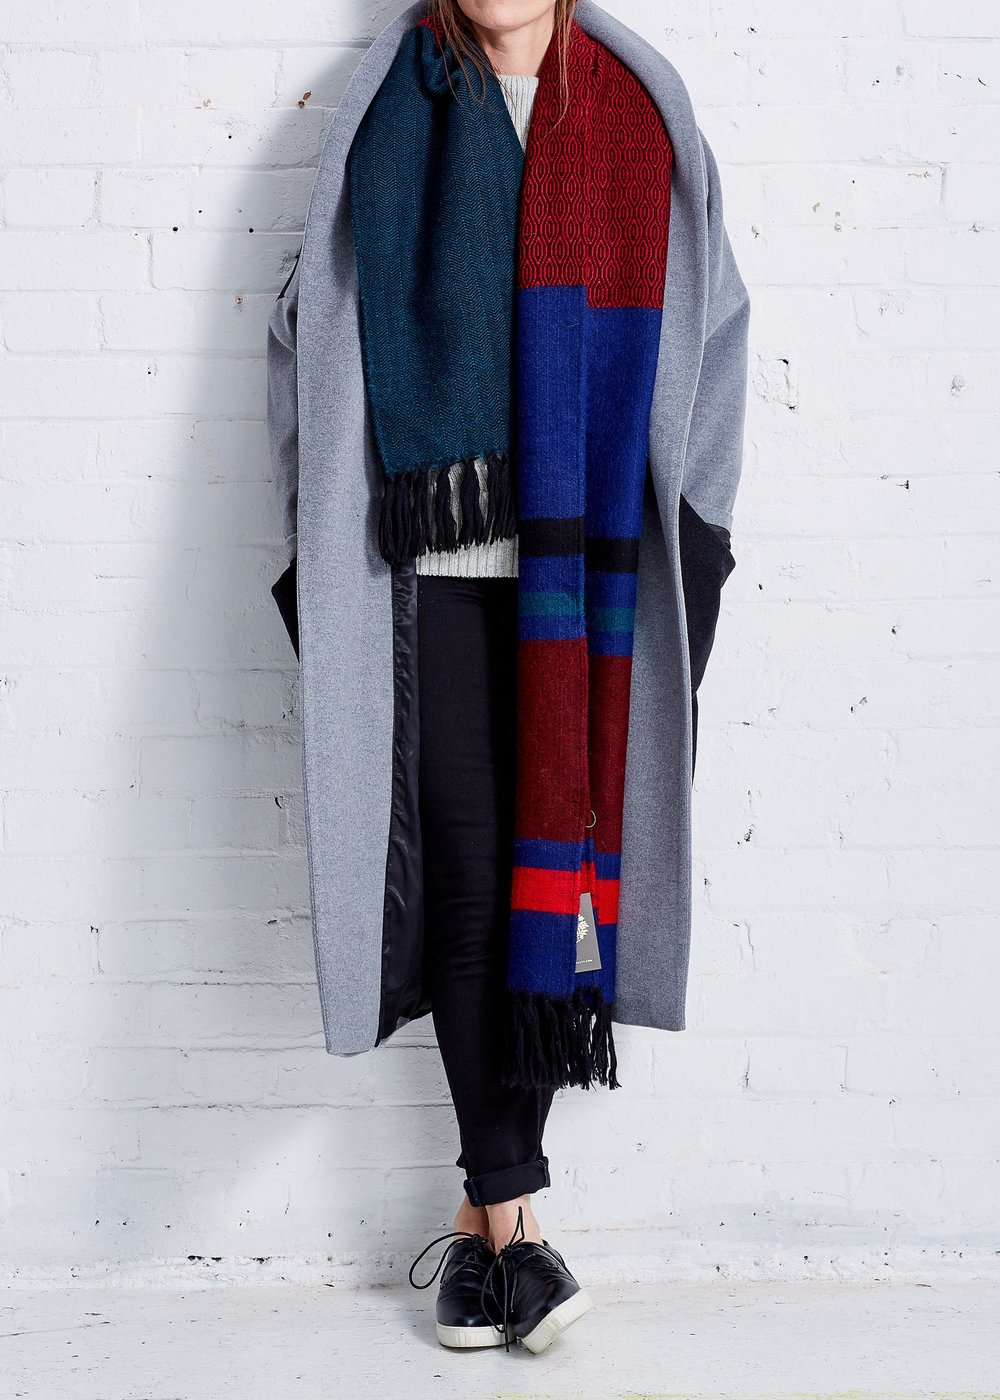 Krishna Alpaca Scarf by A Peace Treaty at Gather&See, £435